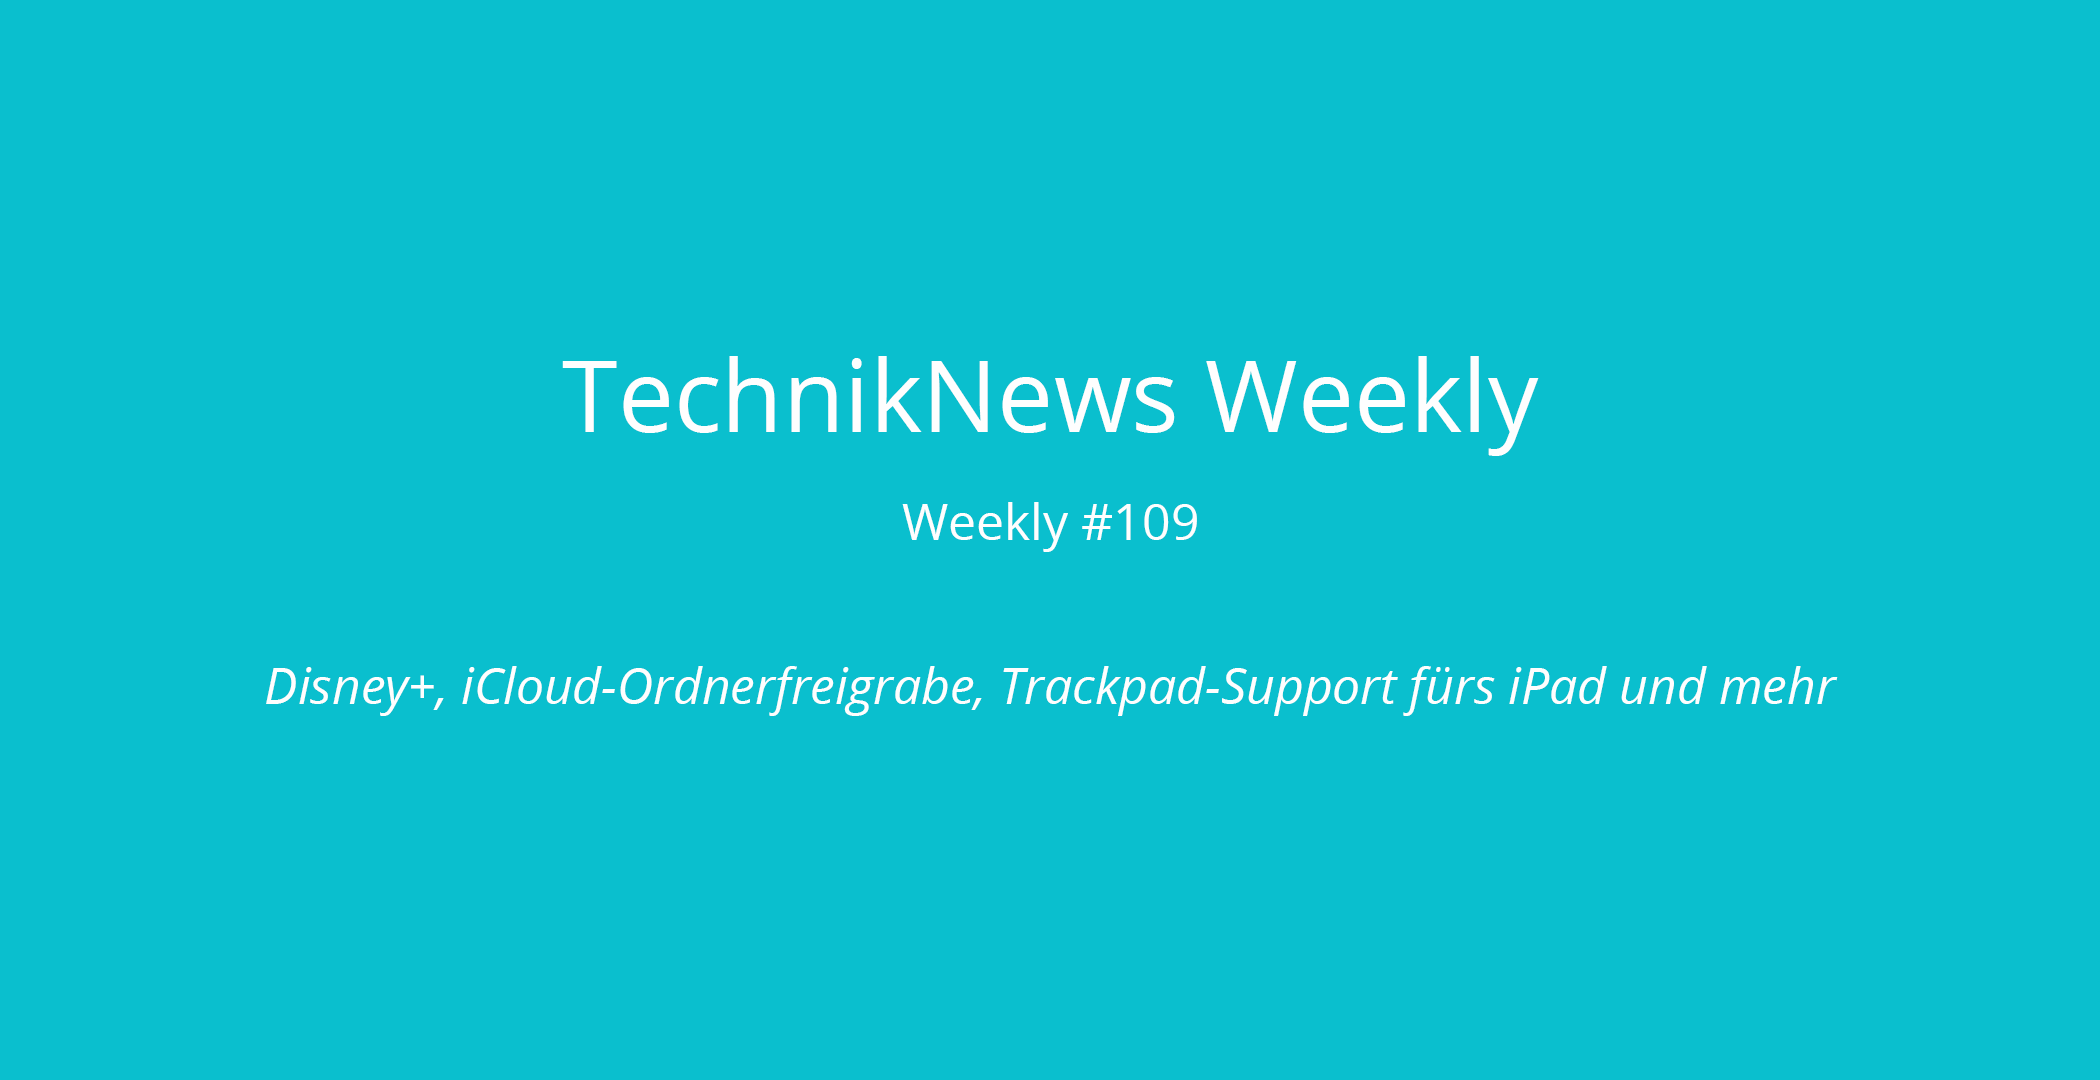 TechnikNews Weekly 109